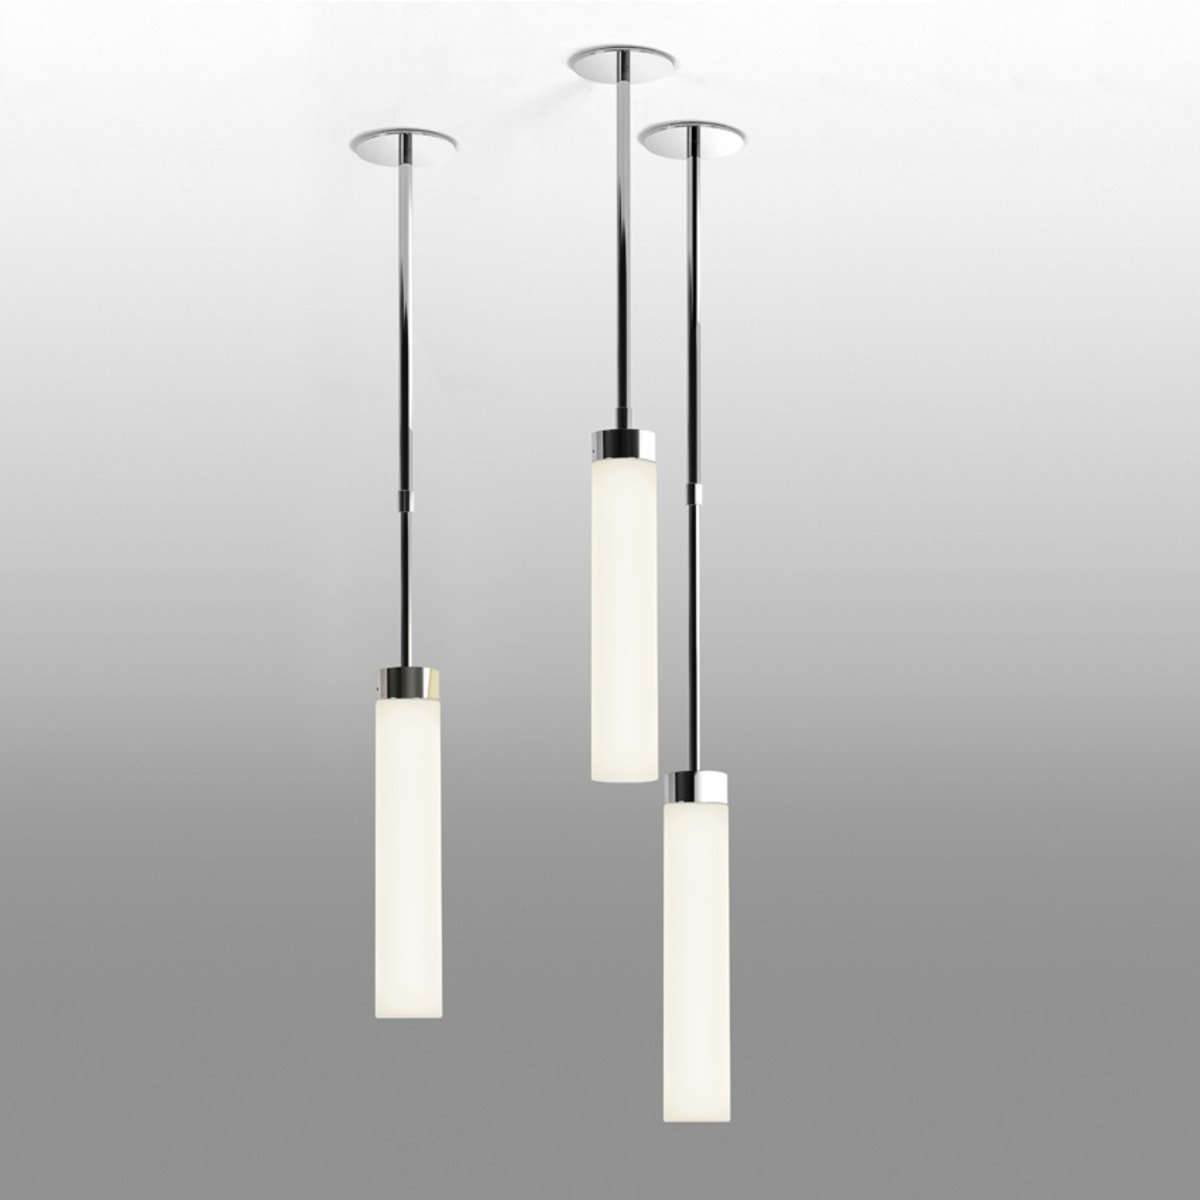 Badkamer Lamp Staal Astro Kyoto Pendant Hanglamp Hl Exclusief 2g11 Chroom 28x7cm 1 15